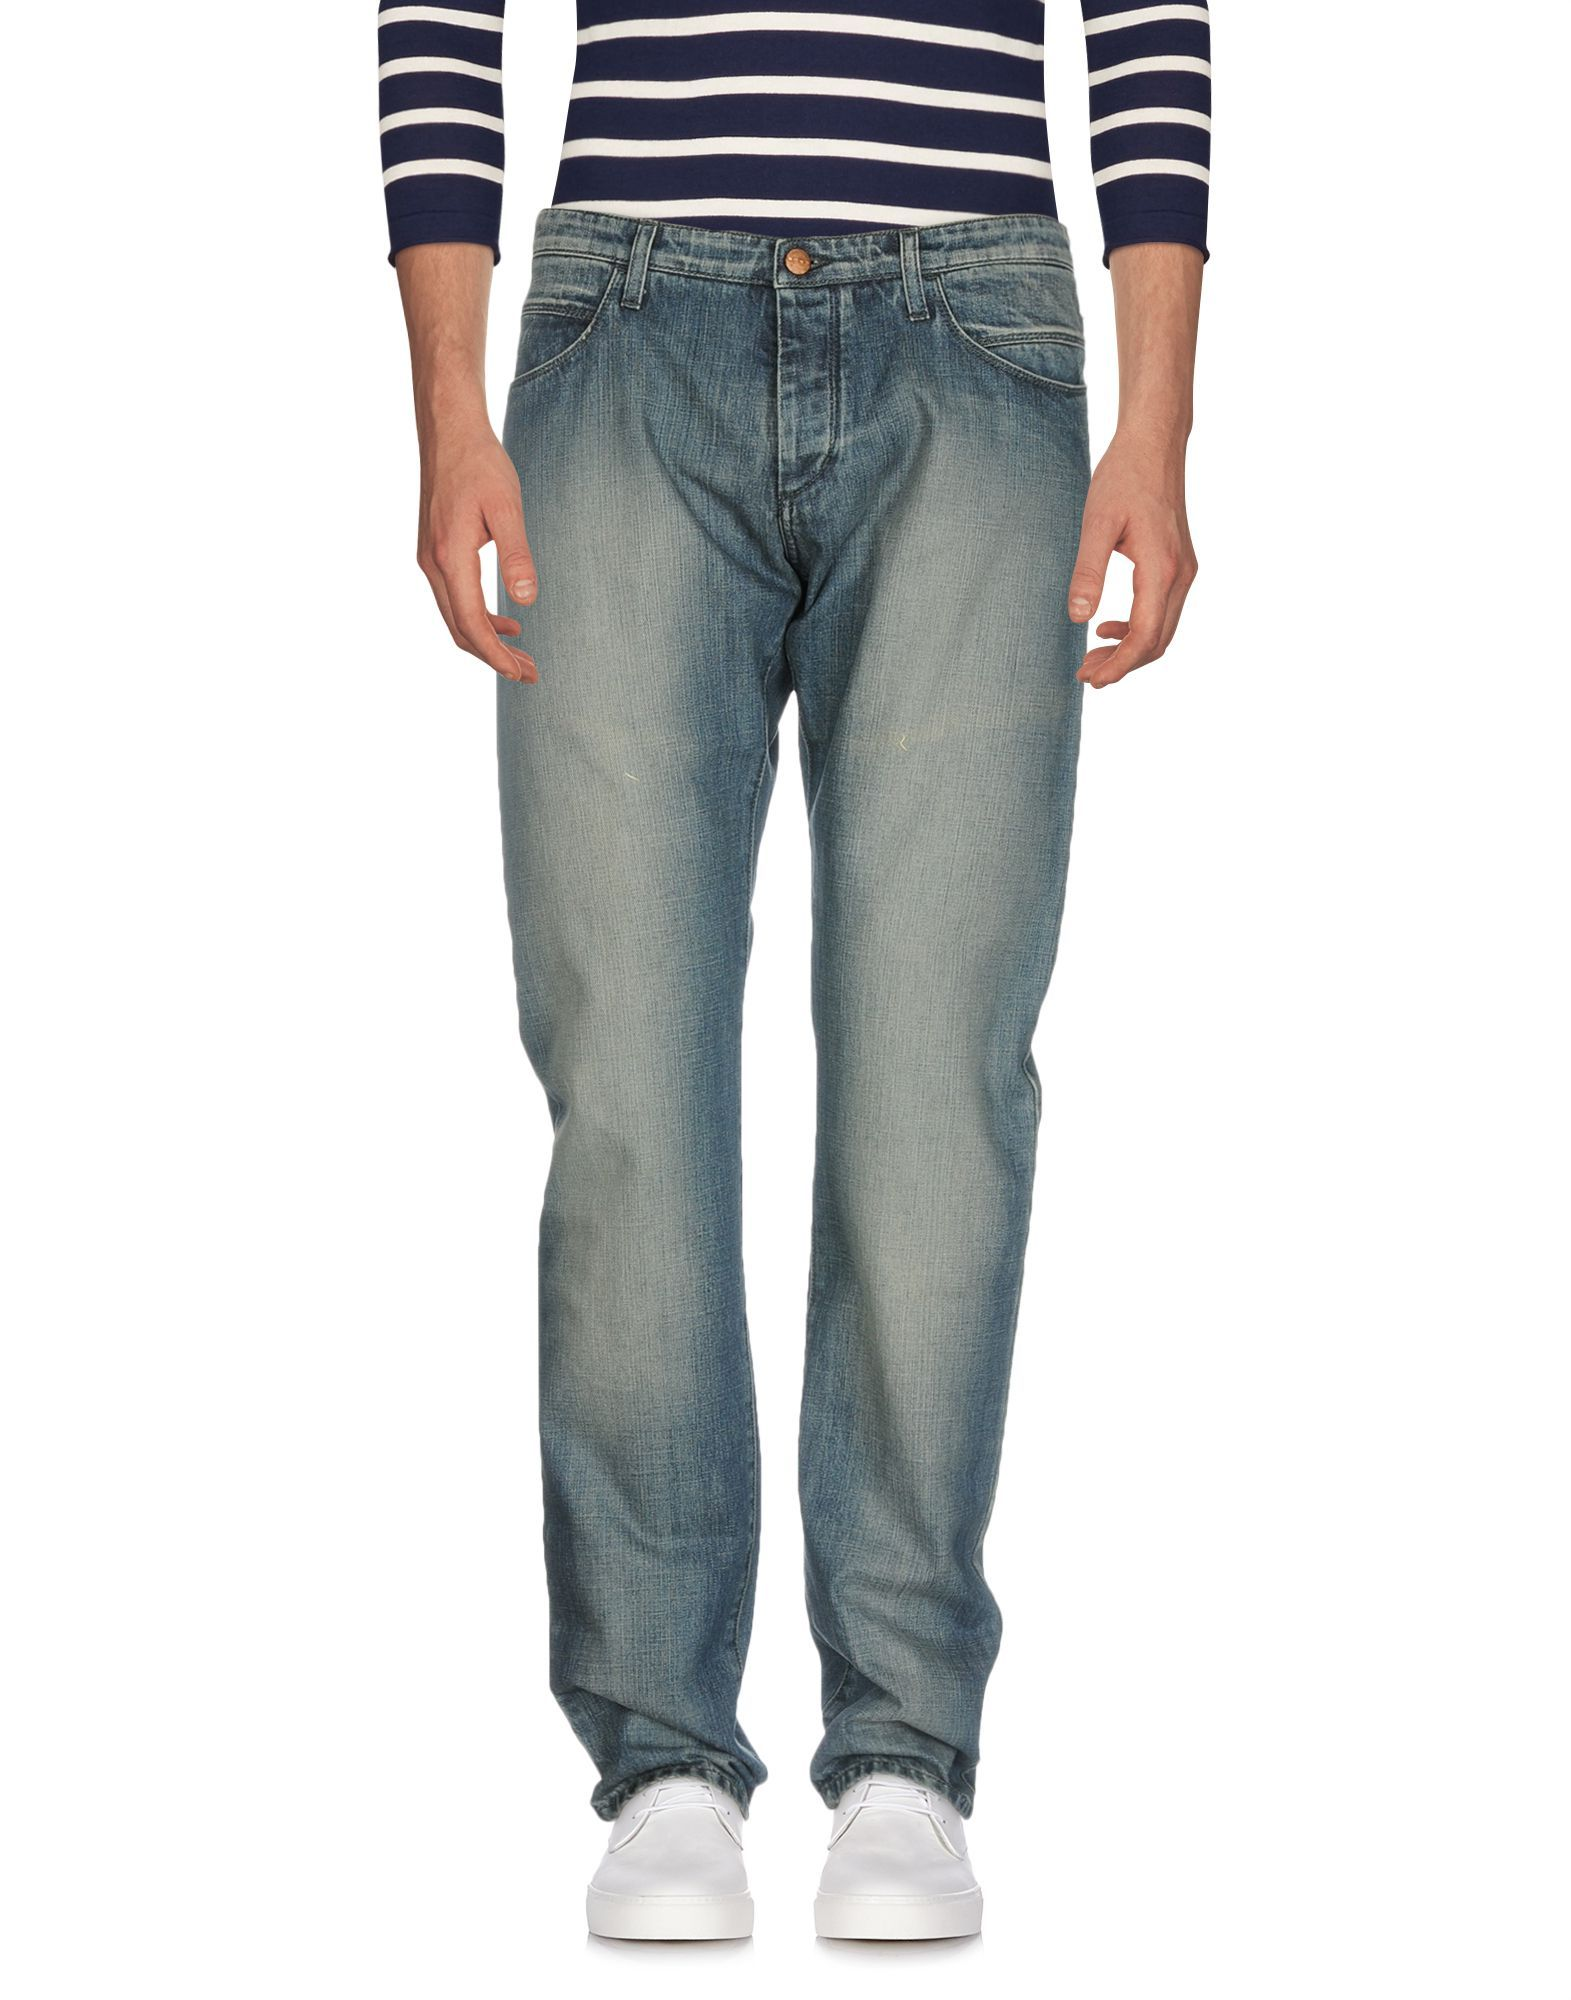 7131b27116c18 ETRO . #etro #cloth # | Etro Men | Denim pants mens, Denim pants, Jeans